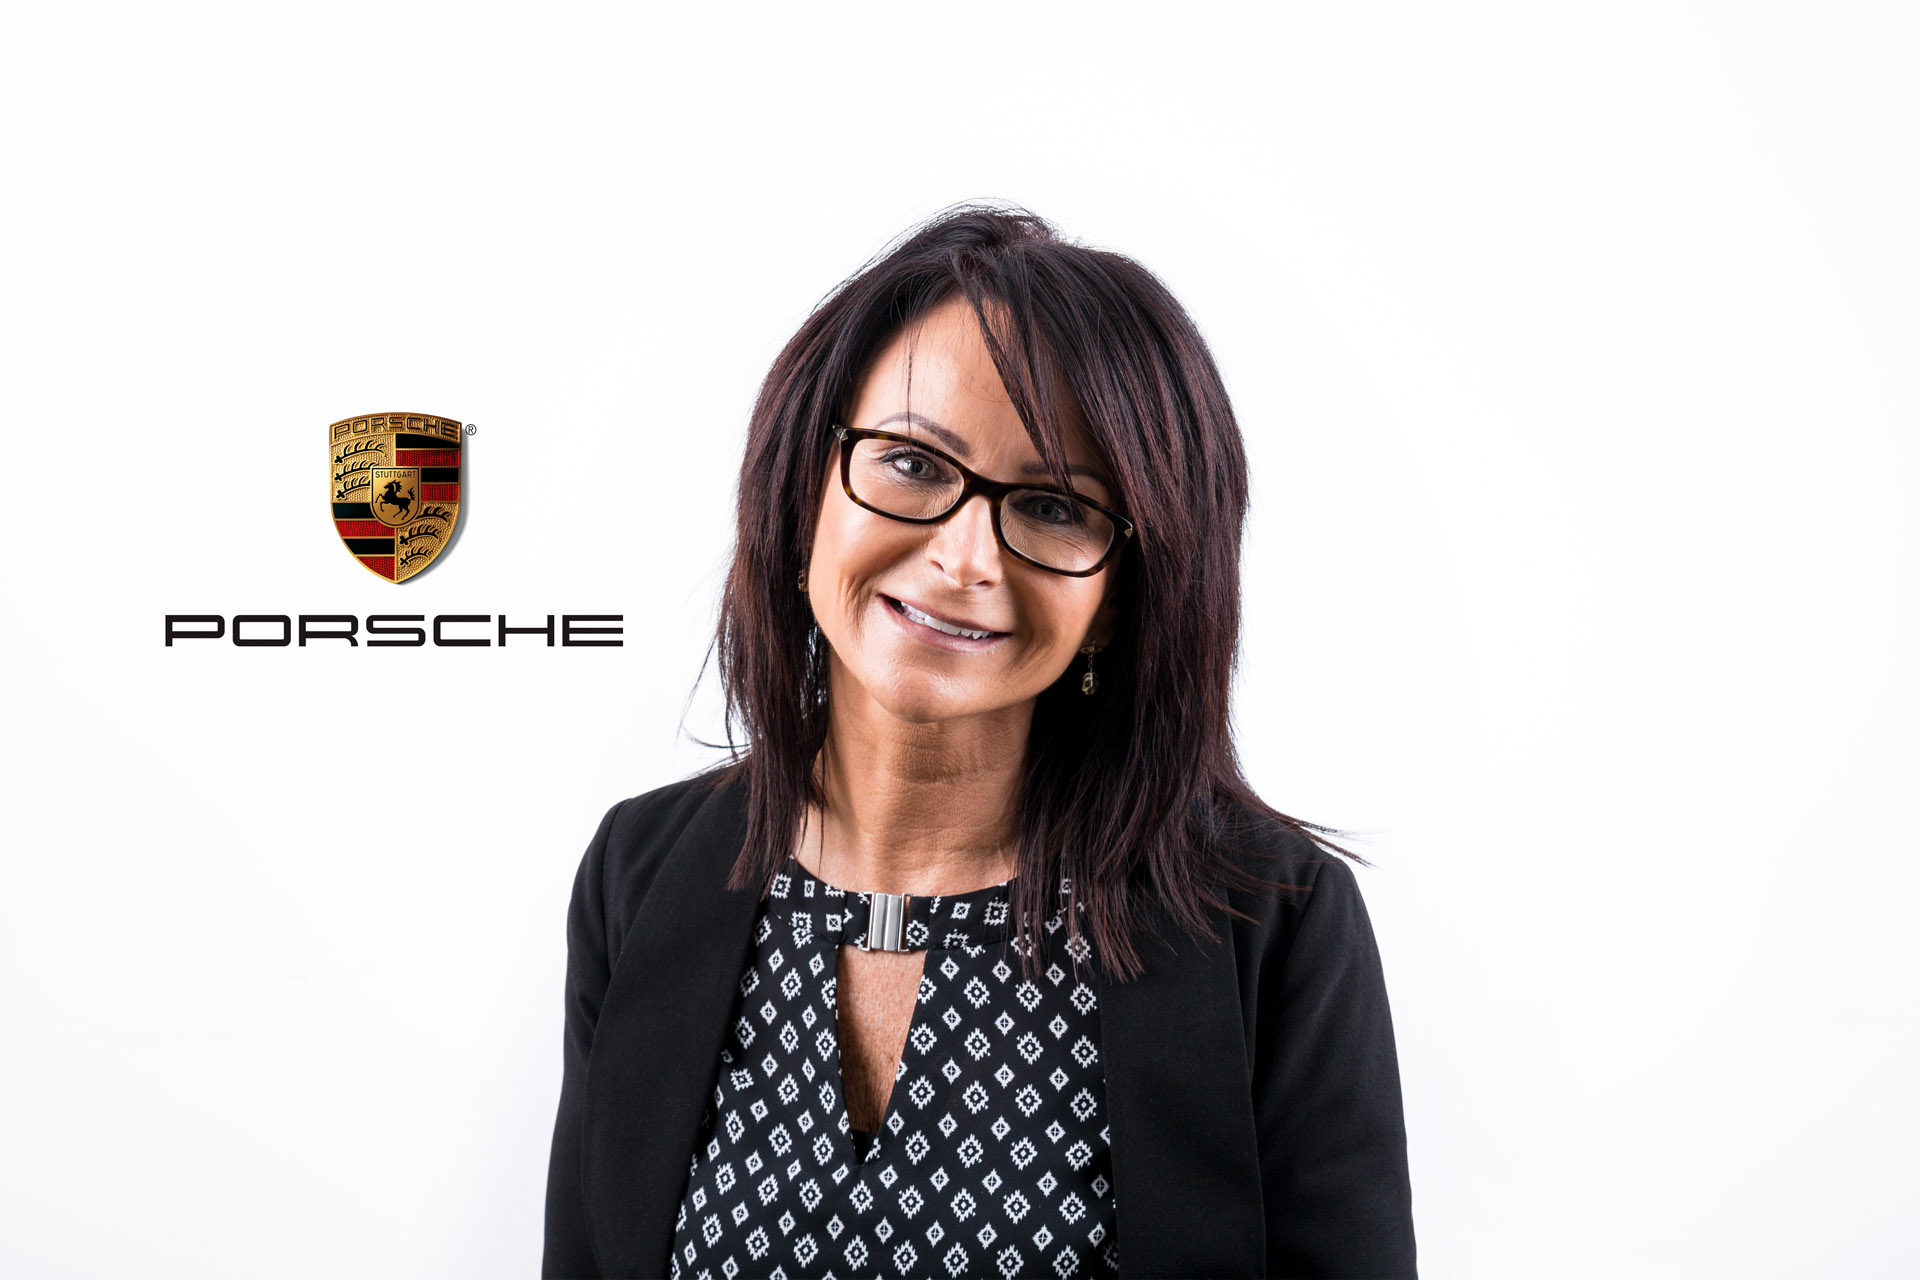 Porsche Portraits Photography Photographer Sheffield Wipdesigns 2